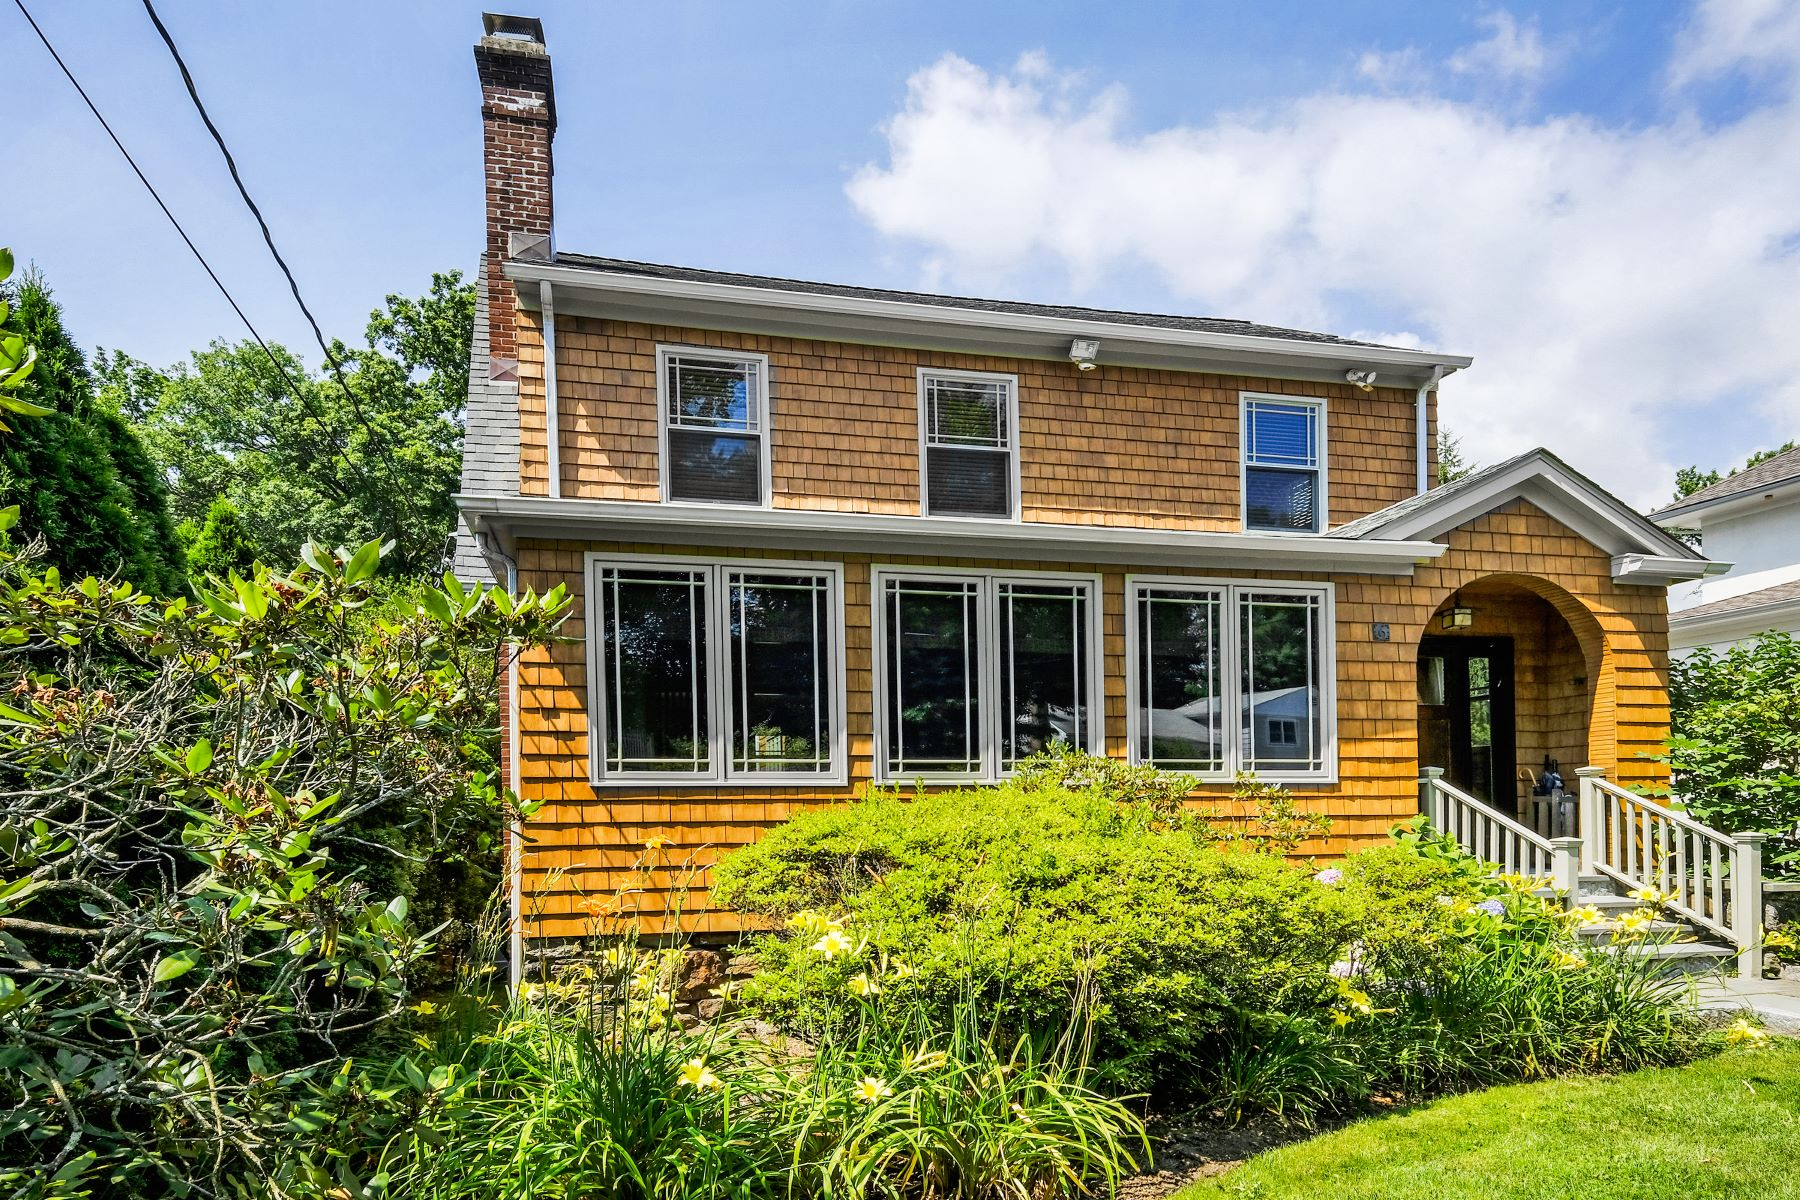 Single Family Home for Sale at 6 Kilmer Road Larchmont, New York, 10538 United States